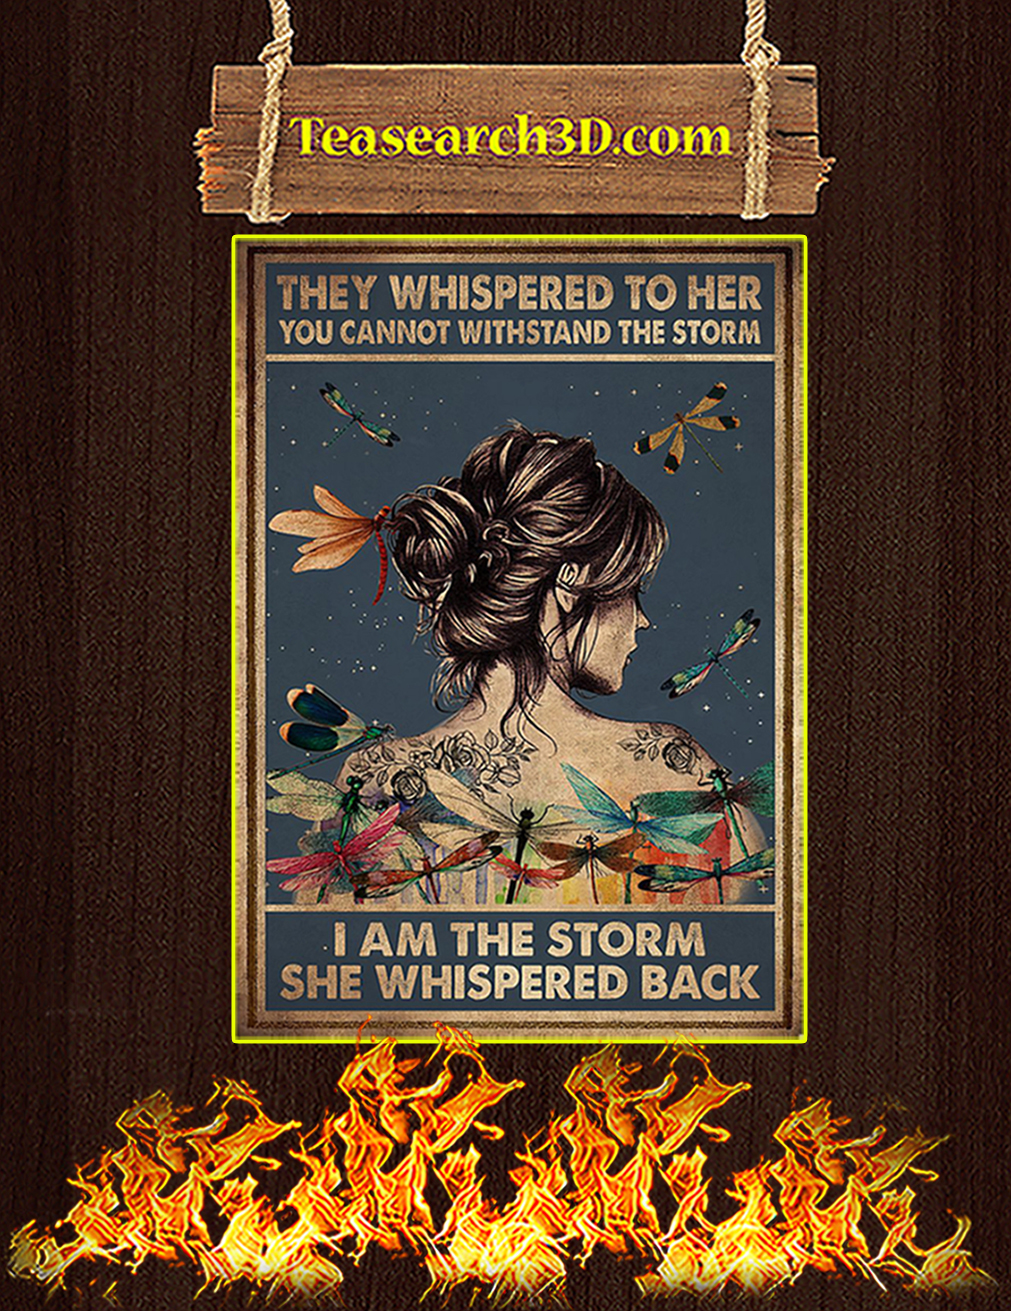 Hippie dragonfly tattoo girl they whispered to her you cannot withstand the storm poster